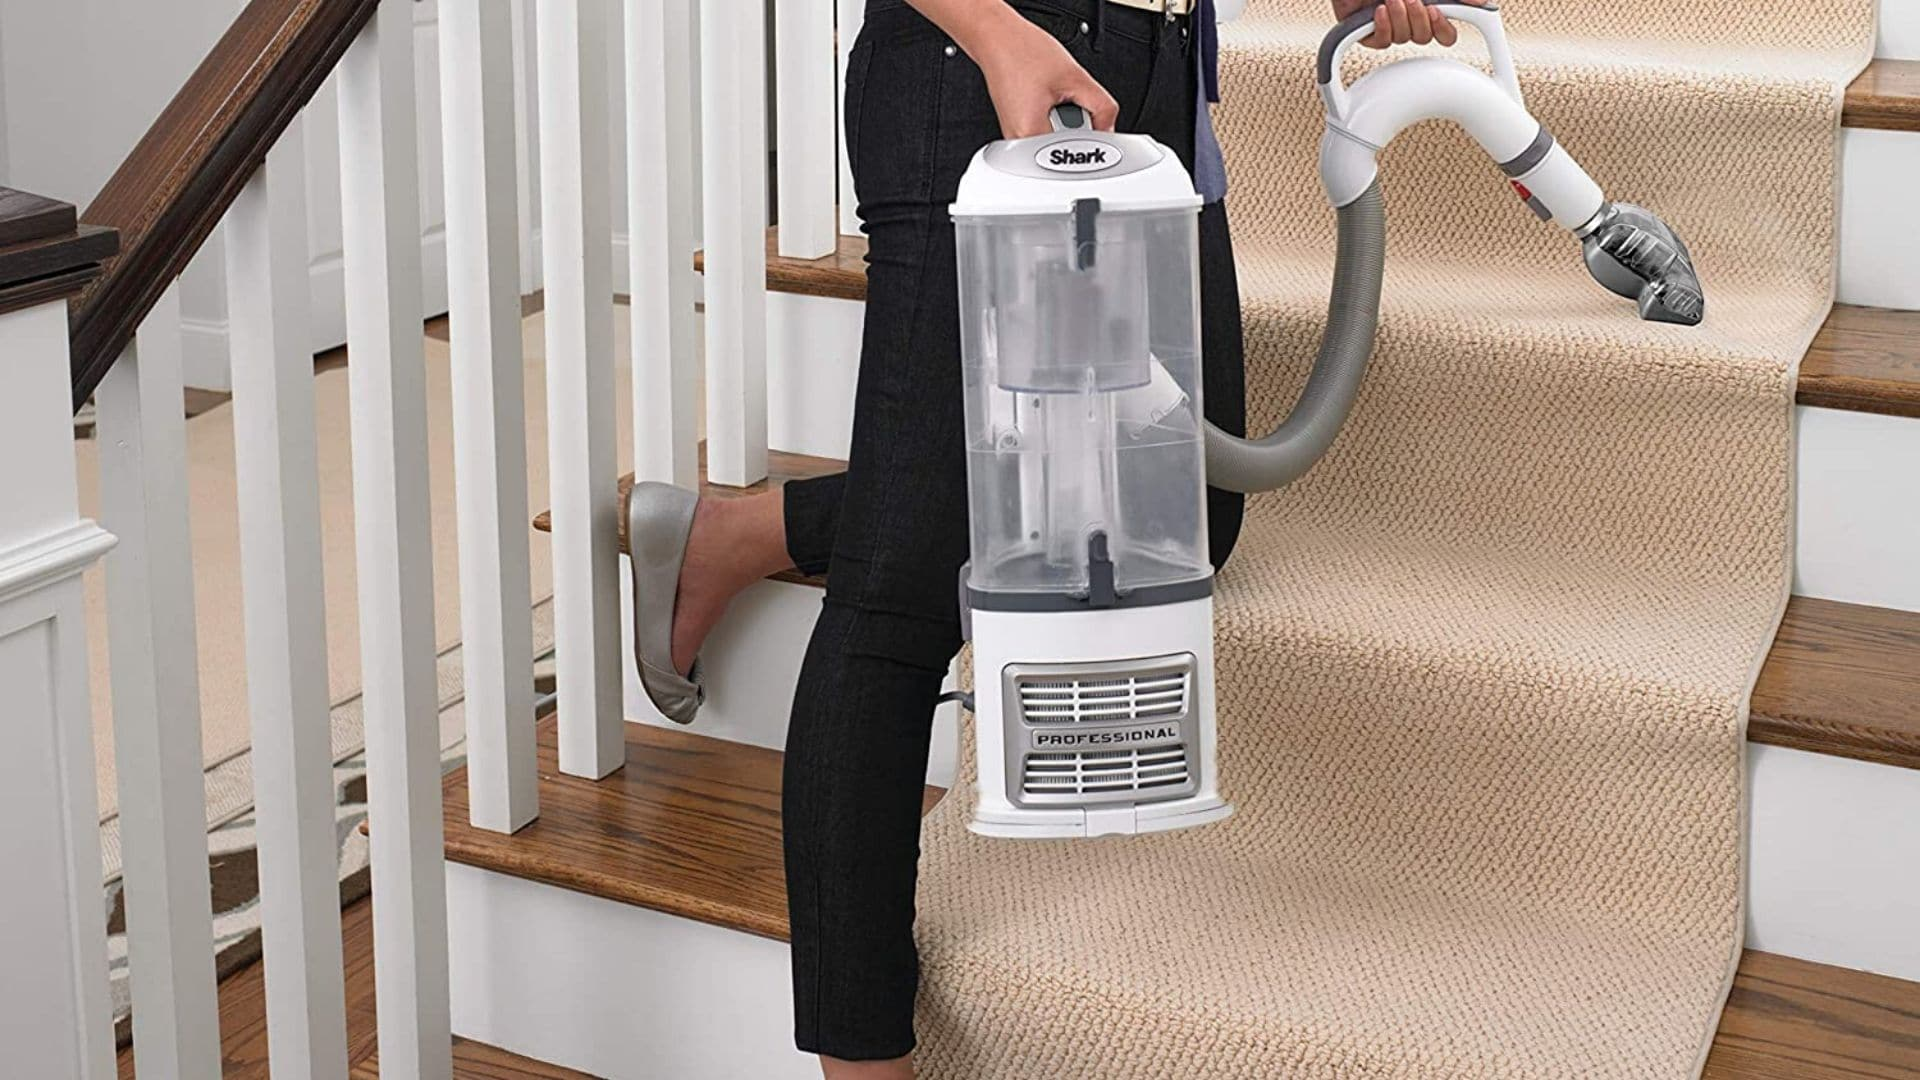 woman kneeling and holding shark navigator lift away professional nv356e to clean stairs